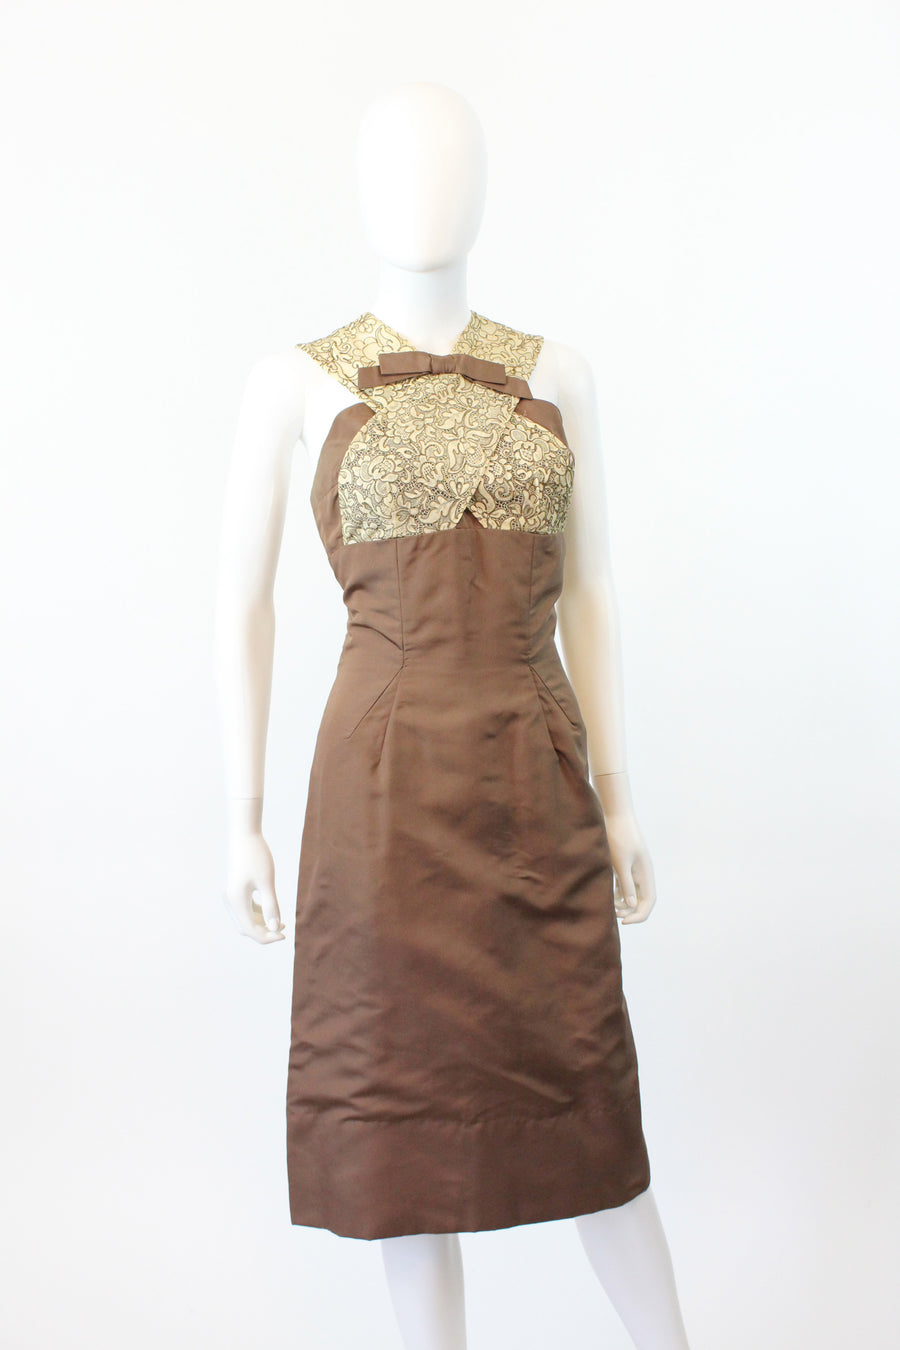 1950s Oleg Cassini wiggle dress small | lace and silk open shoulder dress | new in